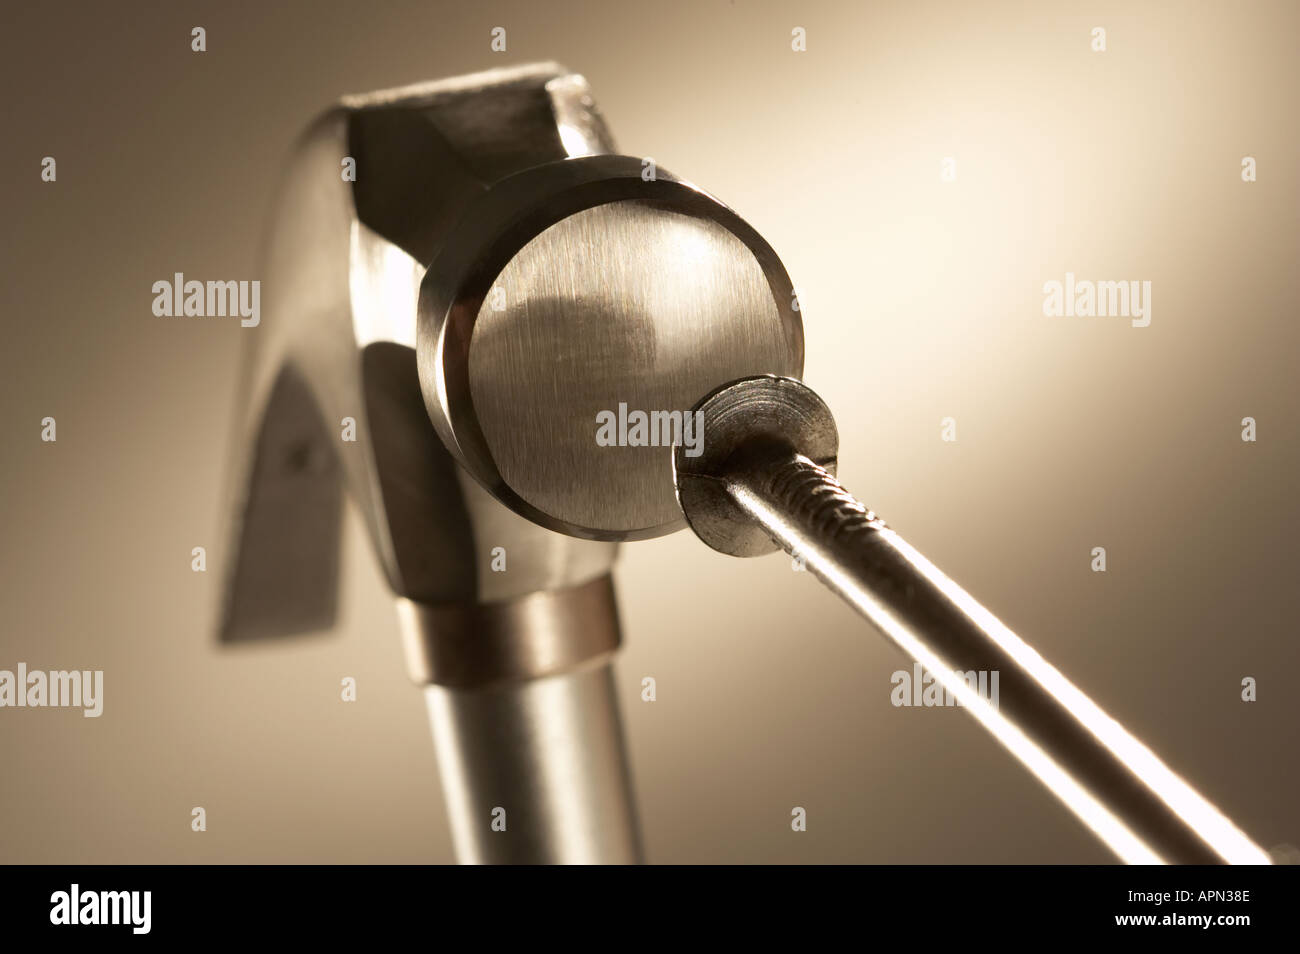 Hitting the Nail on the Head Hammer Concept Stock Photo: 2937741 - Alamy